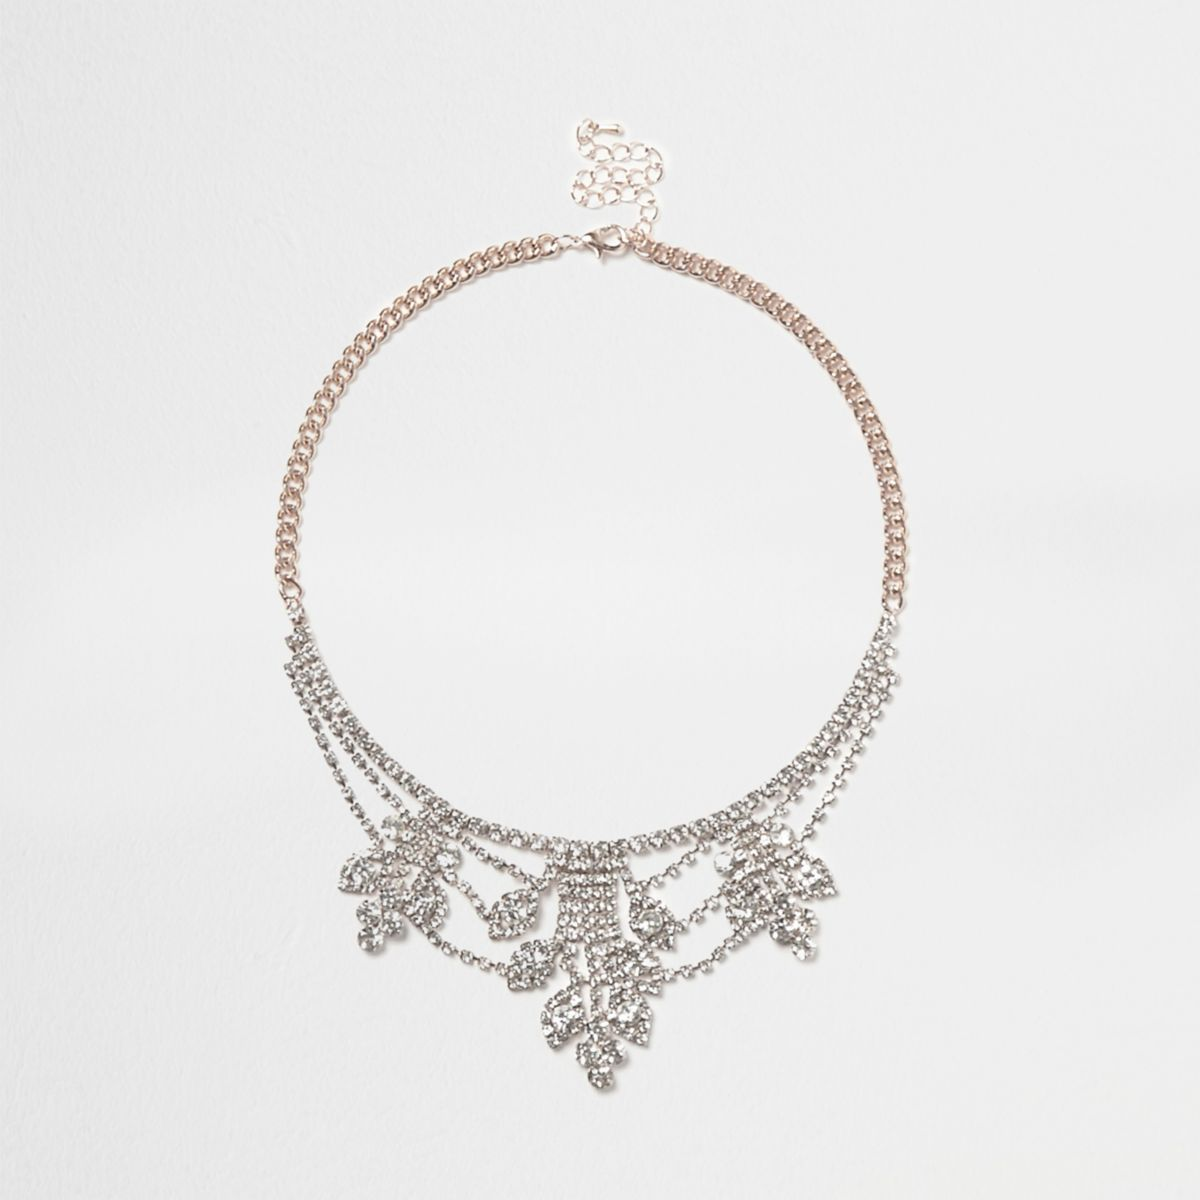 Rose gold tone cup chain statement necklace